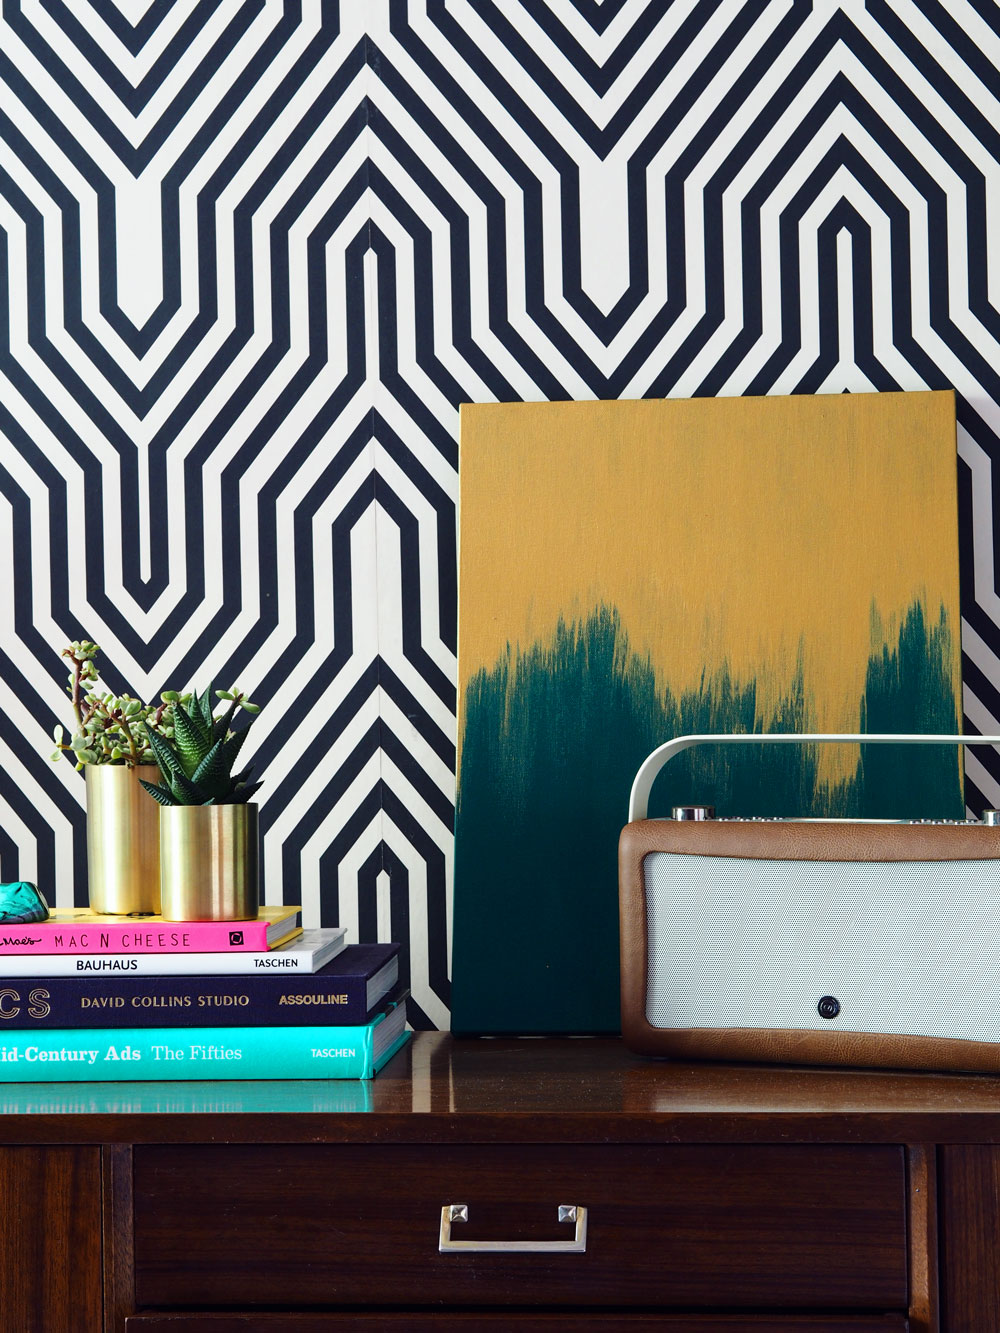 Design Interieur Job The 5 Step Guide To Becoming An Interior Stylist Sarah Akwisombe